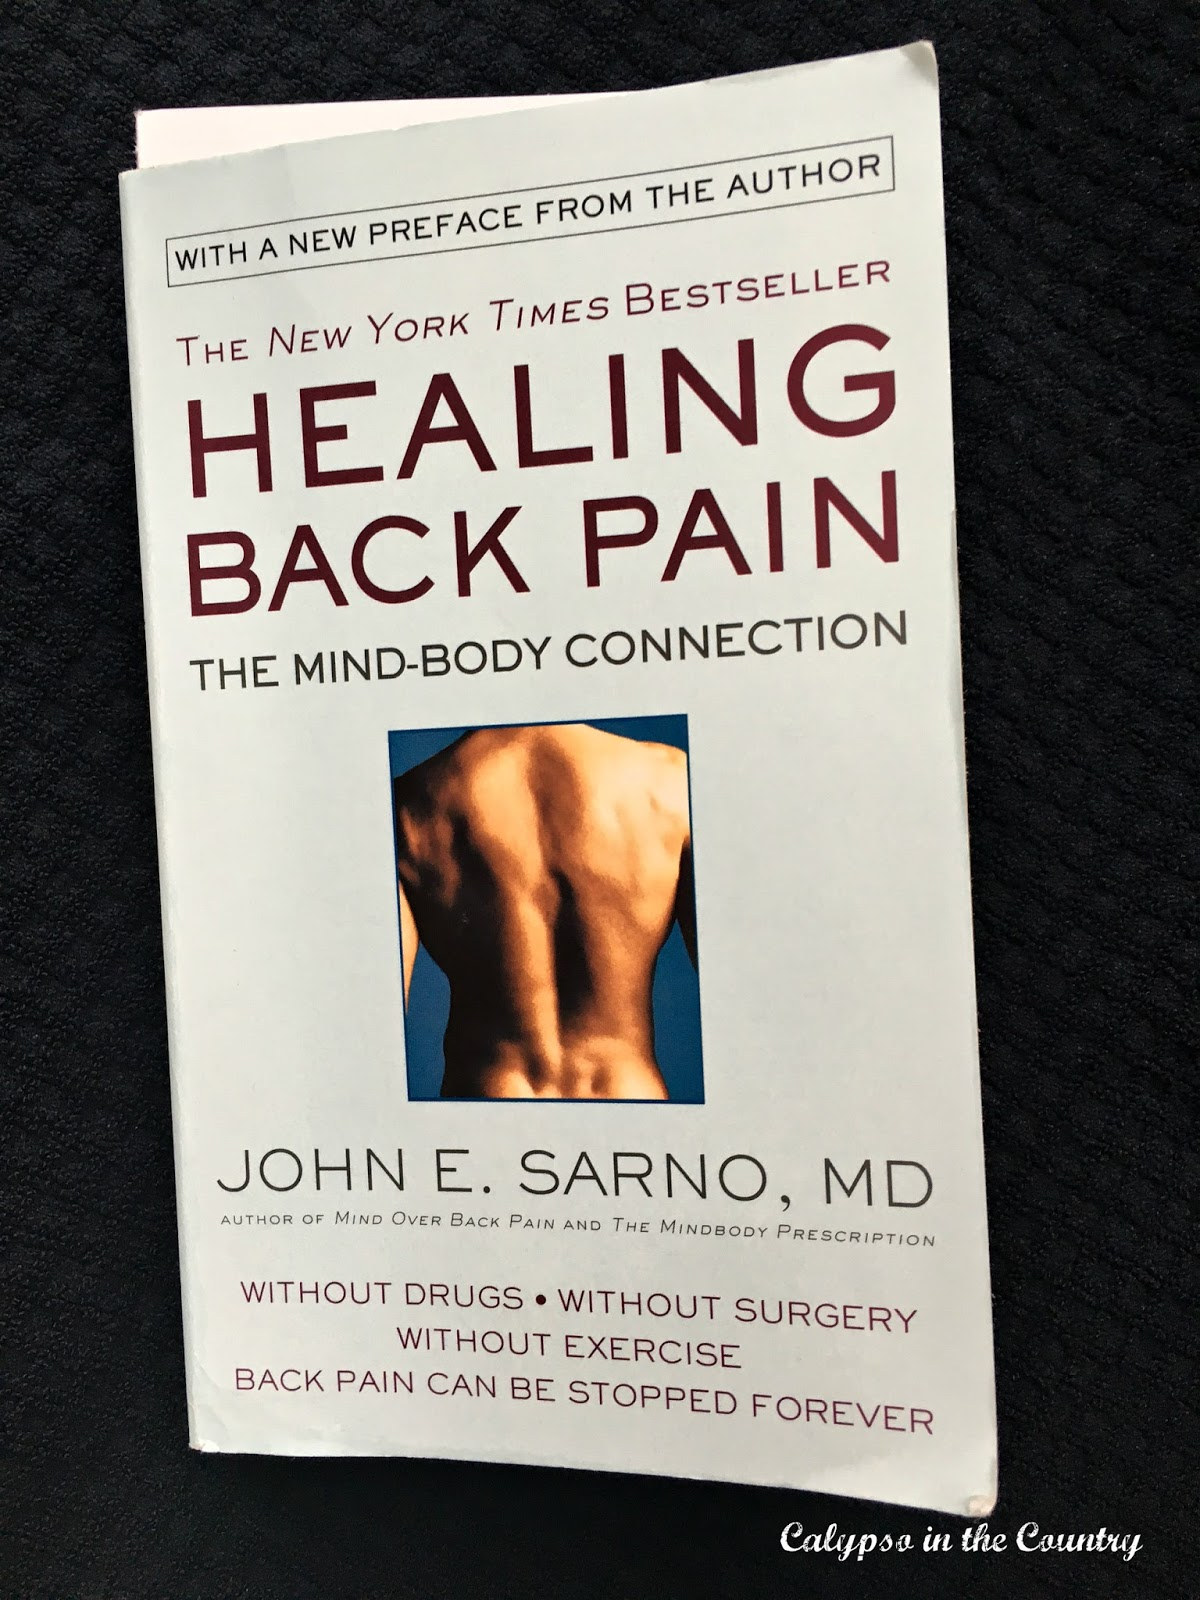 Healing Back Pain by John Sarno - the guy Howard Stern recommends